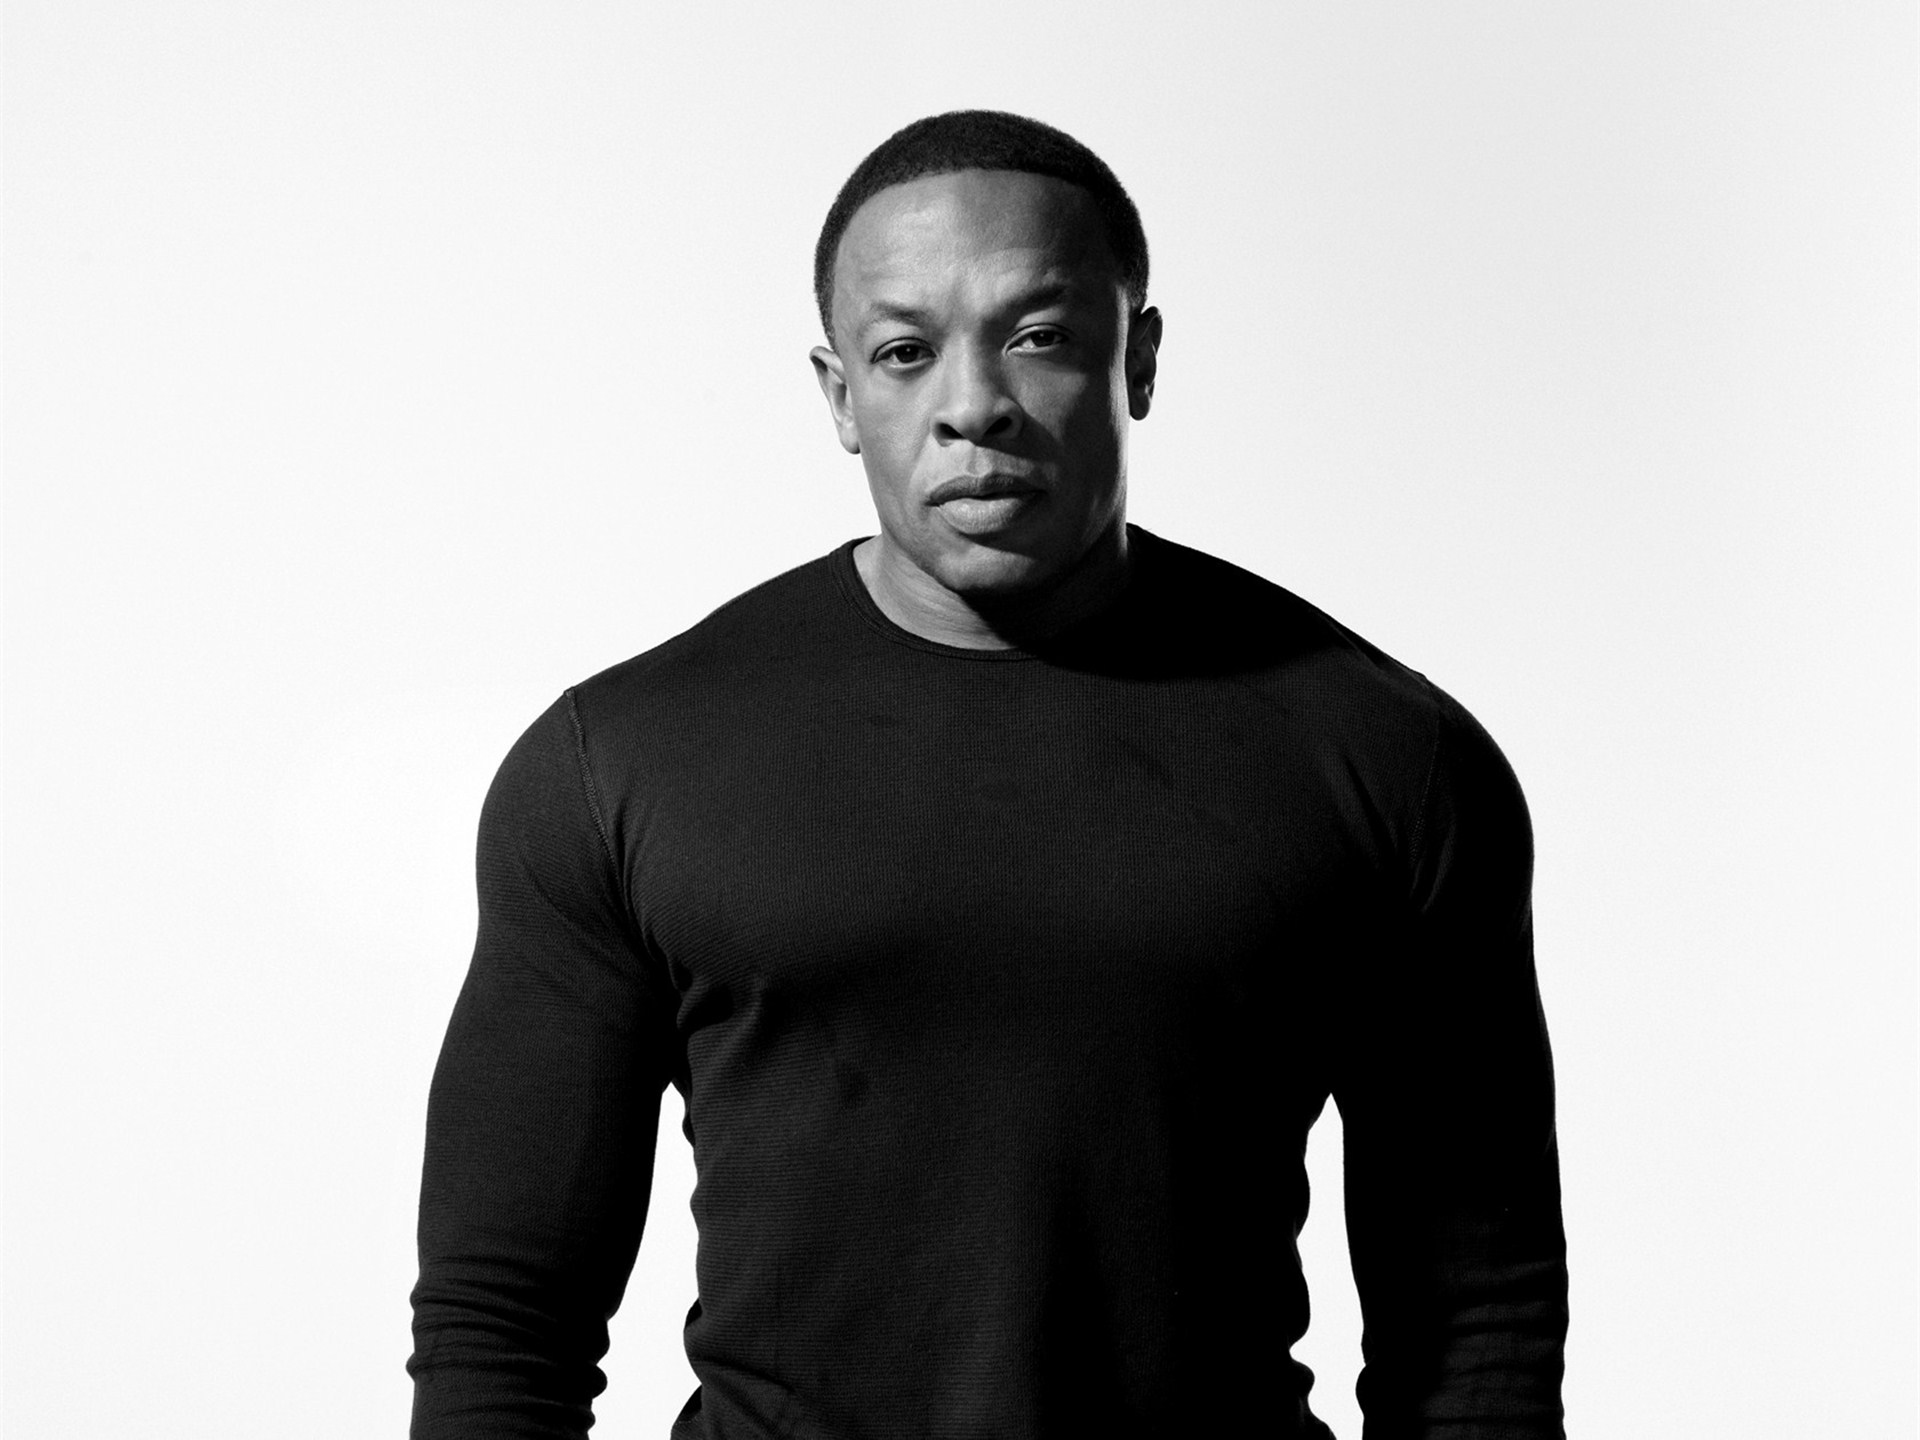 Apple is reportedly bankrolling a new original TV series starring Dr. Dre